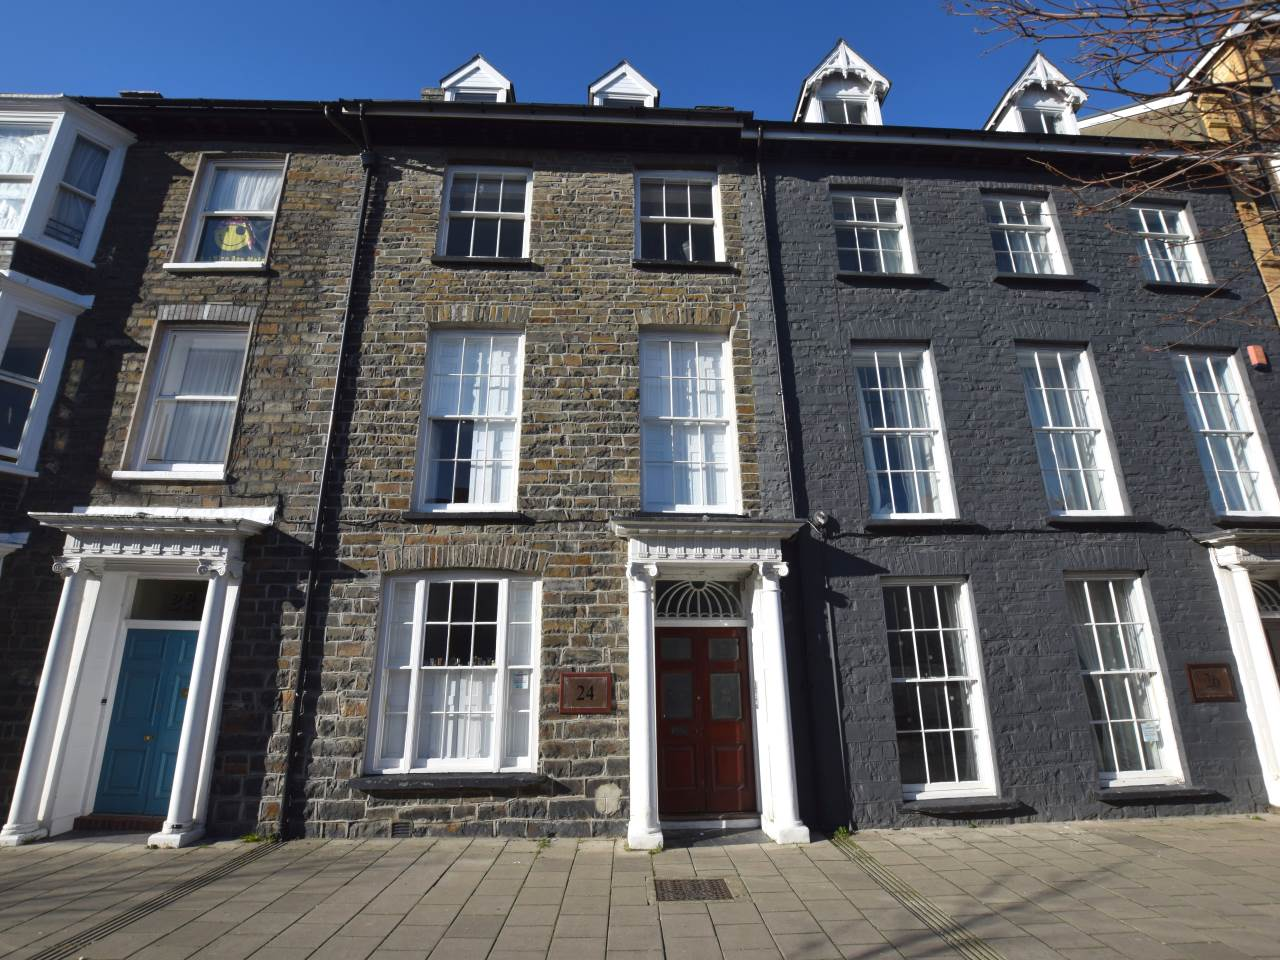 3 bed flat to rent in Aberystwyth, Ceredigion - Property Image 1